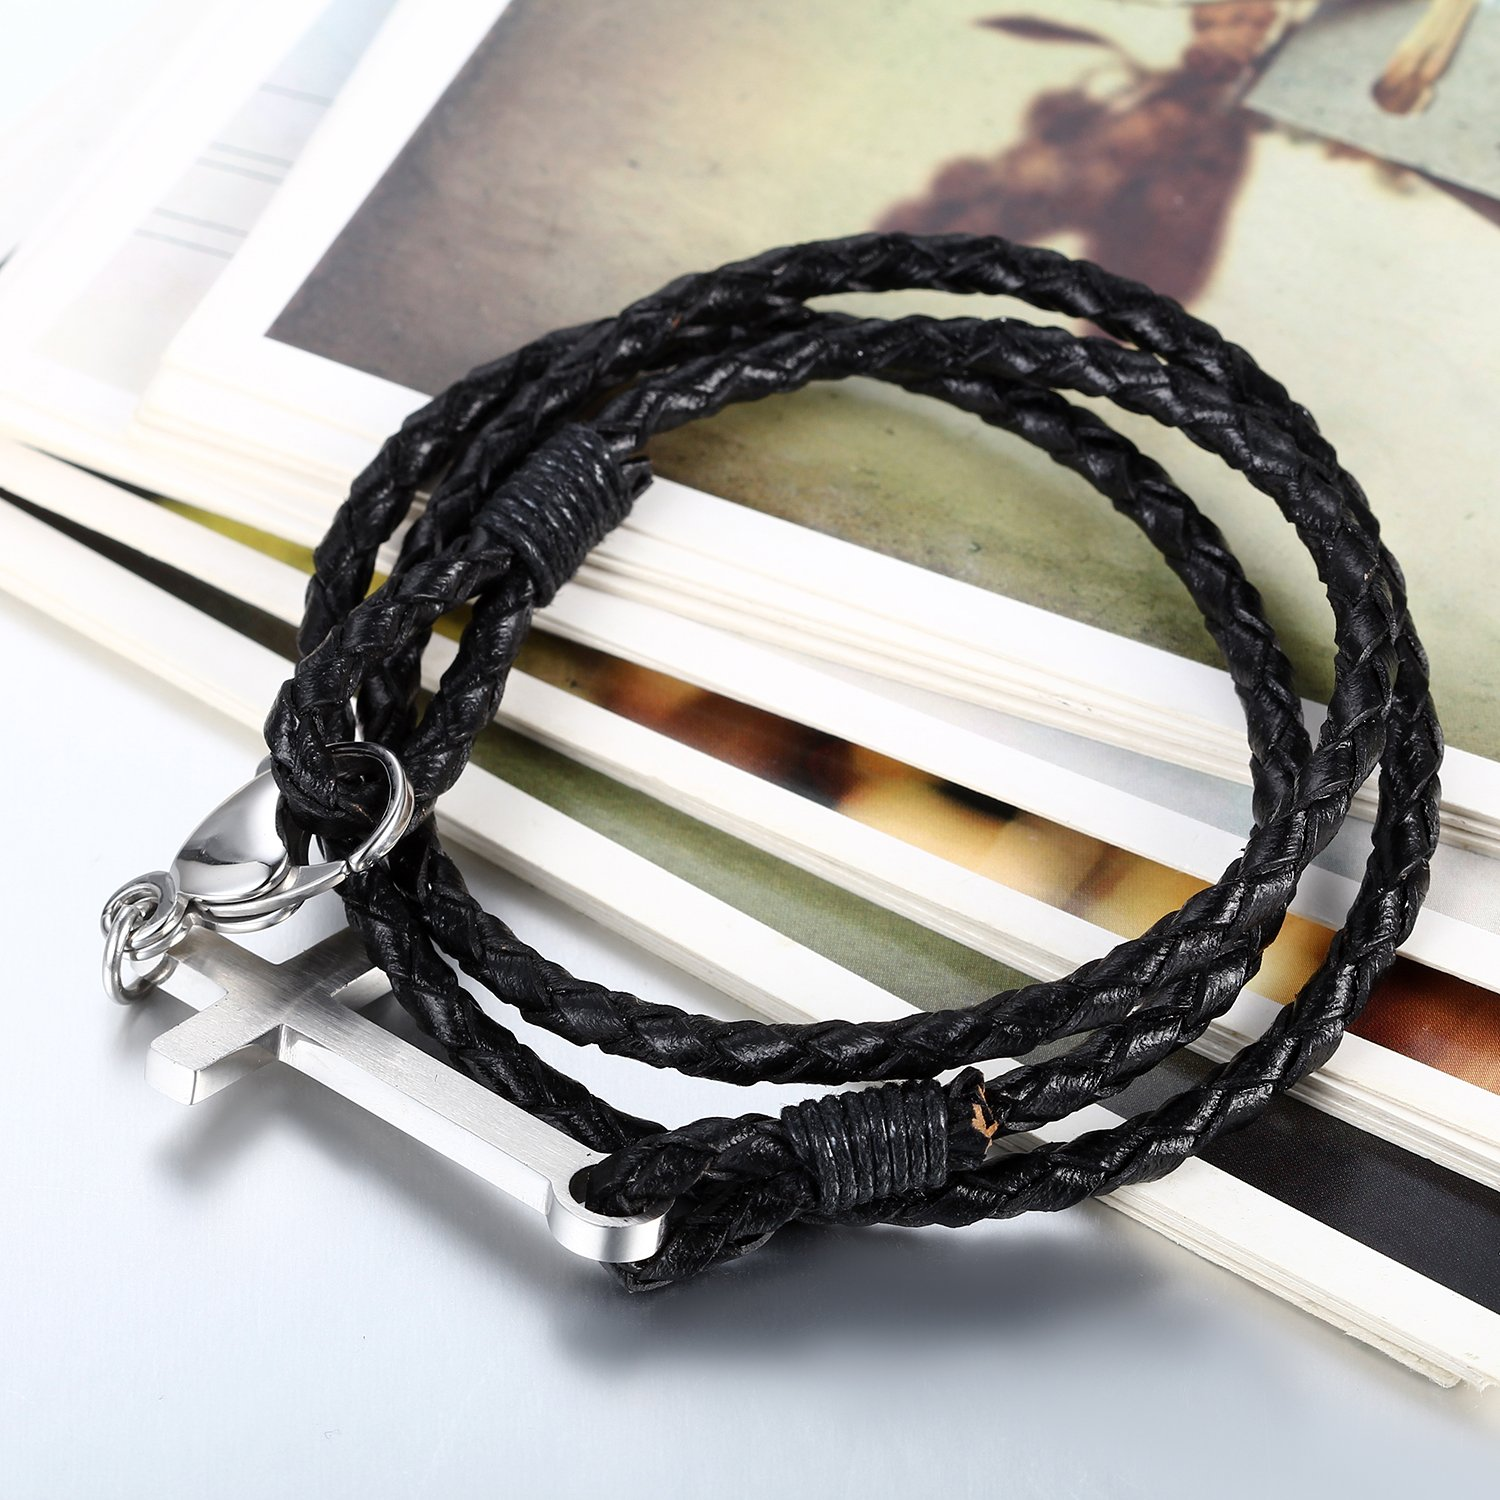 Flongo Mens Vintage Stainless Steel English Bible Lords Prayer Cross Braided Leather Cuff Bracelet 8.5 inch